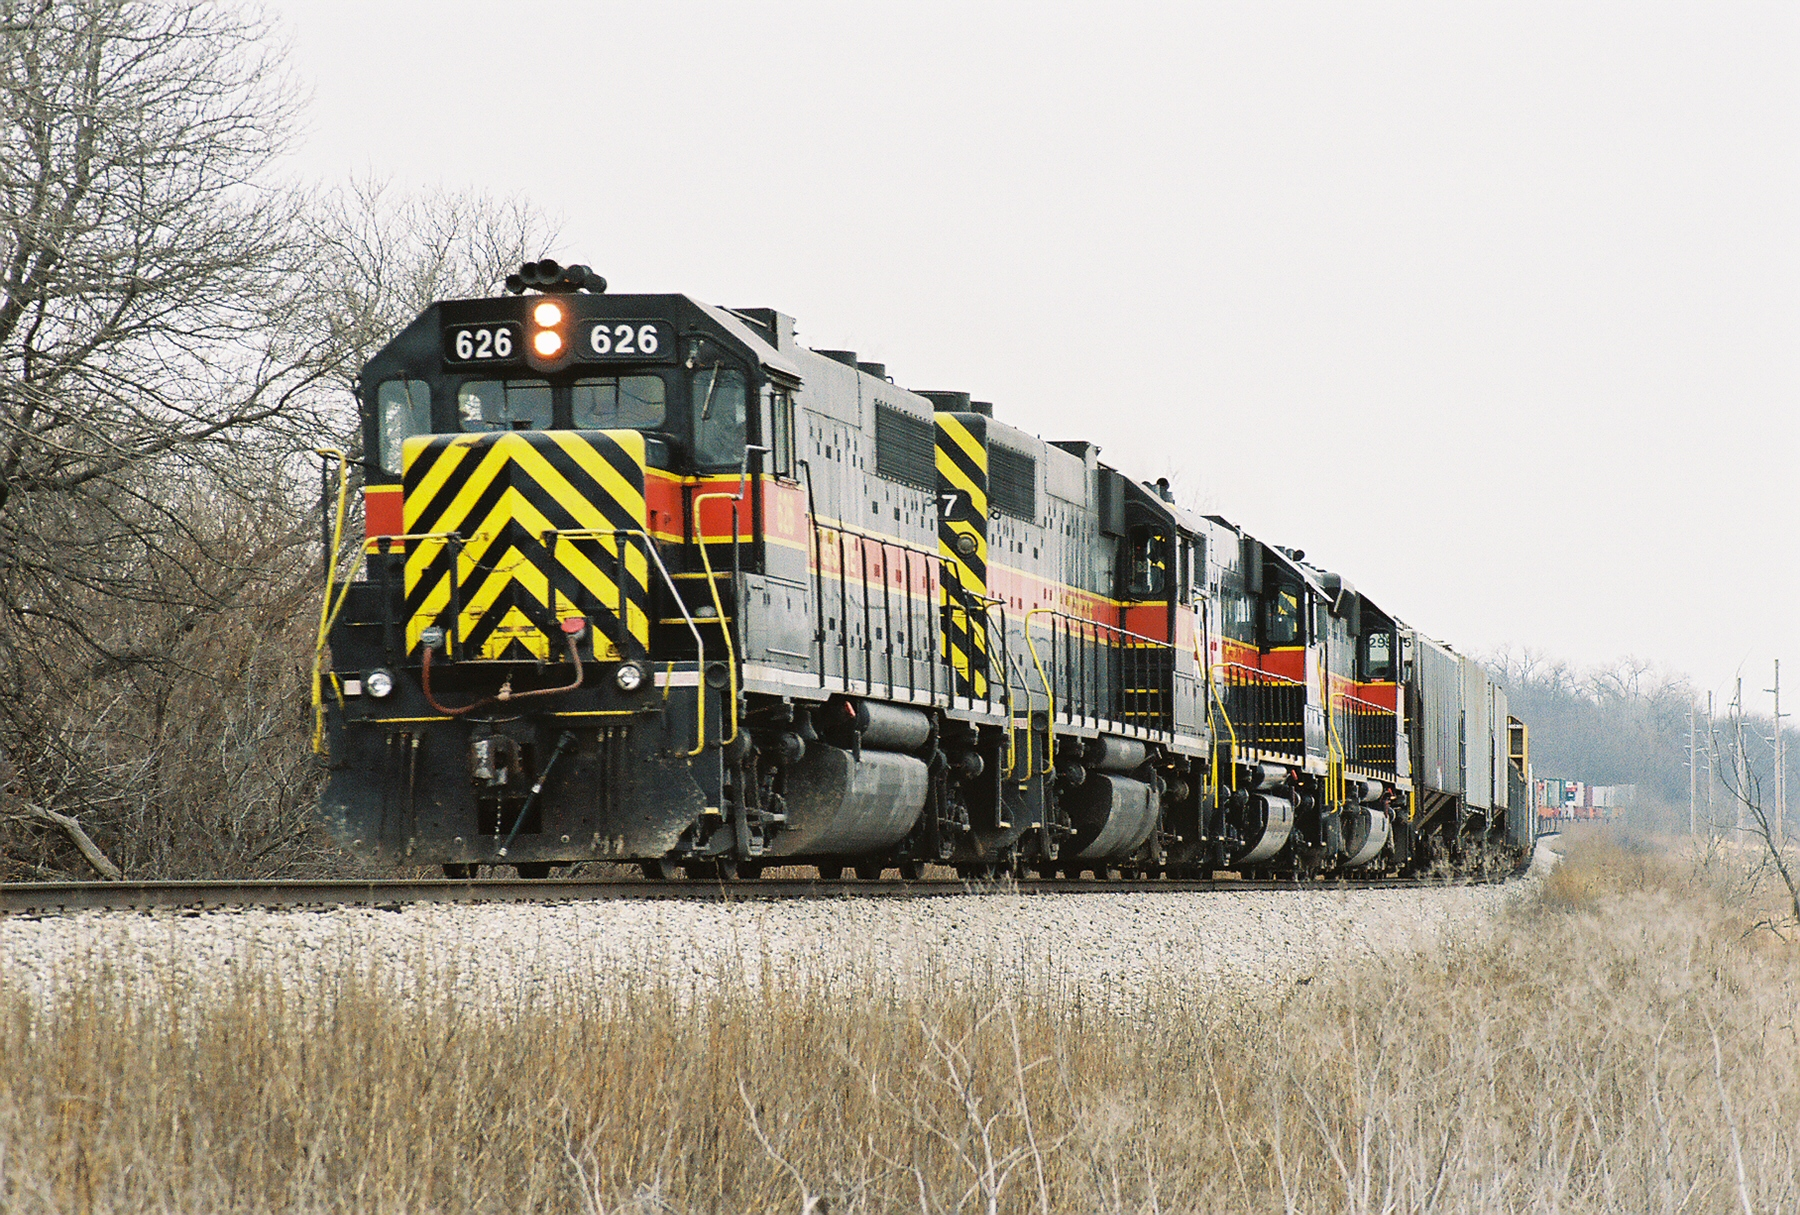 626 leading three units approaches the crossing east of Oxford, Iowa in this mid December 2006 photo.